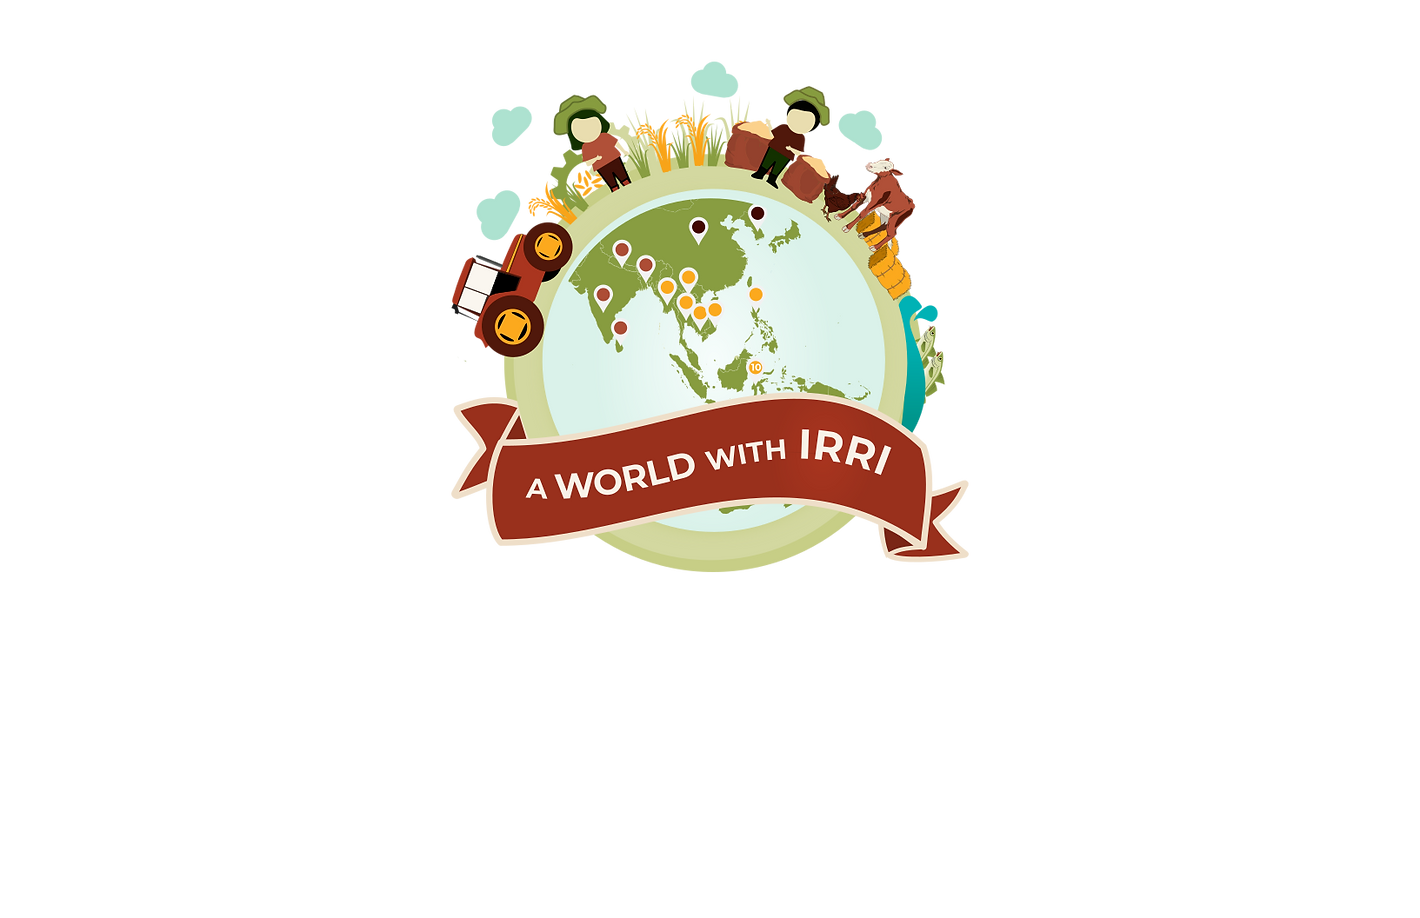 A-world-with-irri-10.png